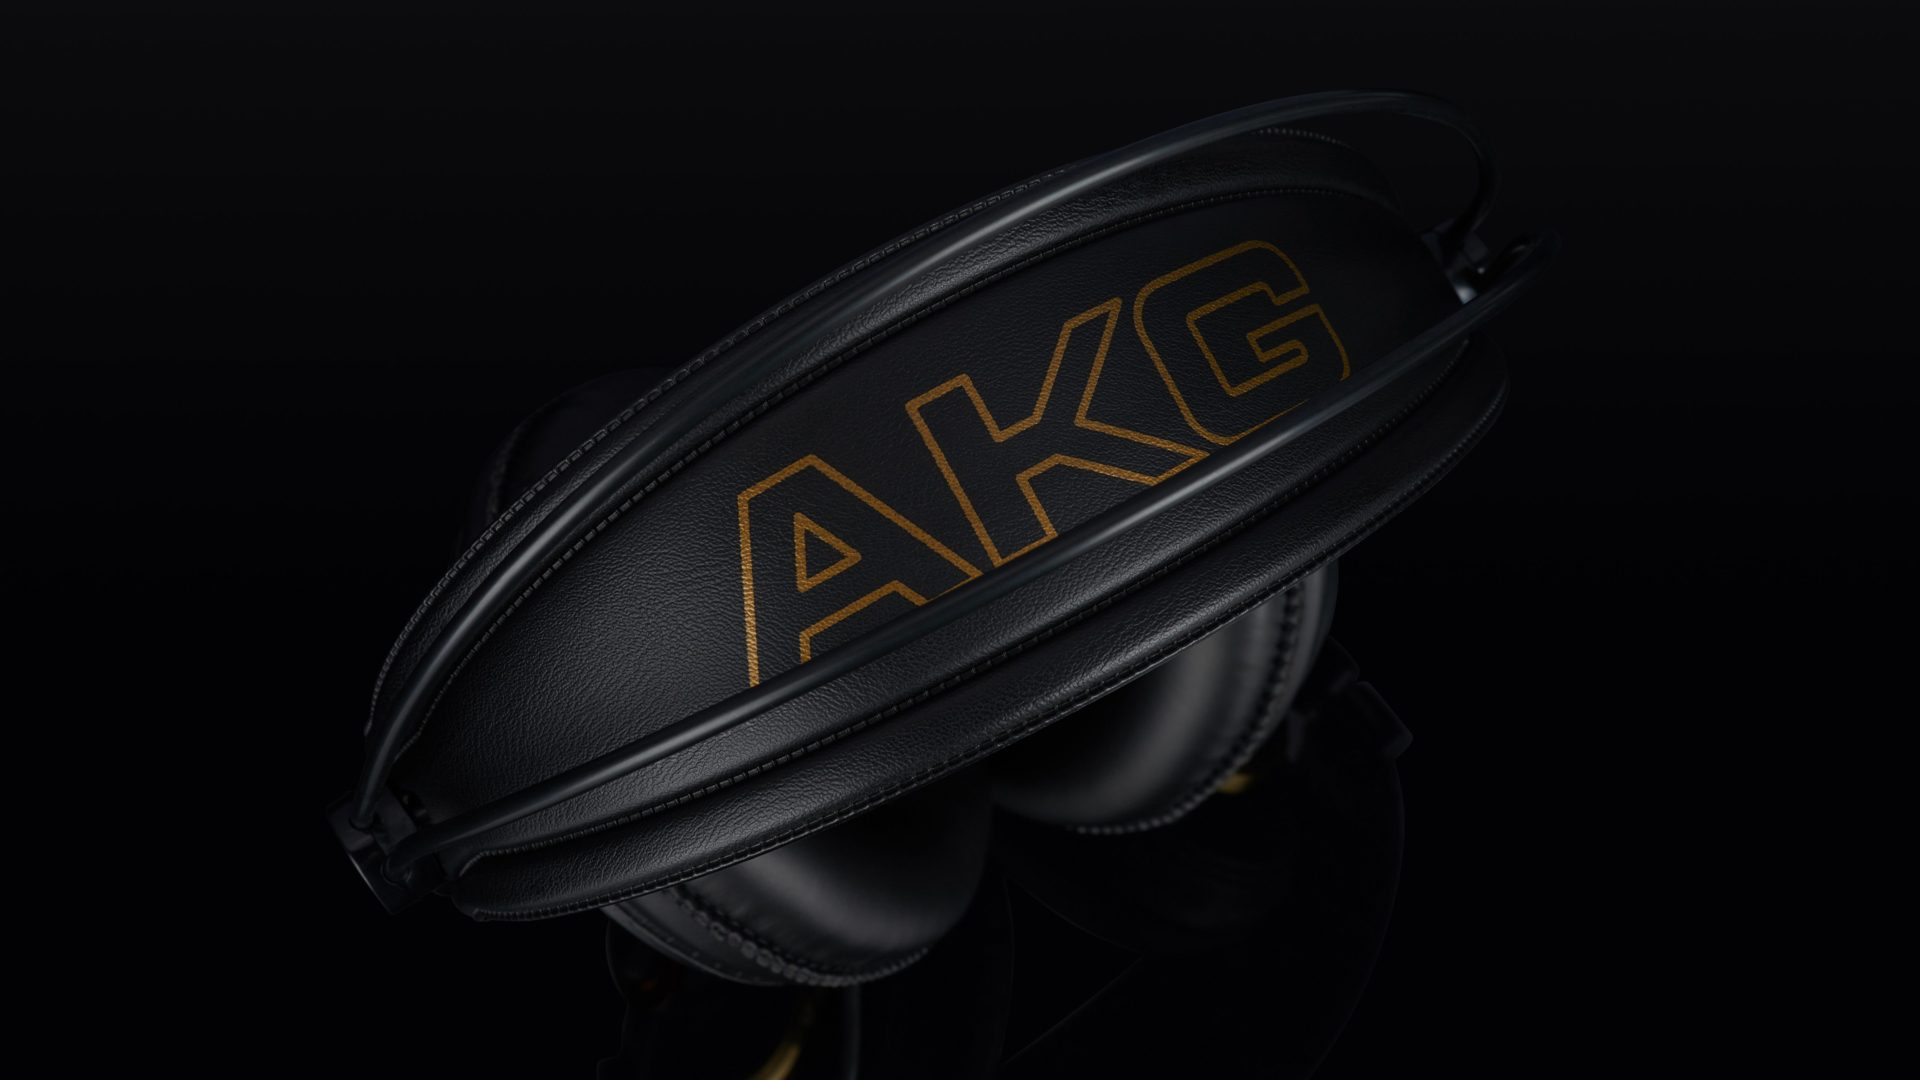 akg k240 studio im test bei. Black Bedroom Furniture Sets. Home Design Ideas